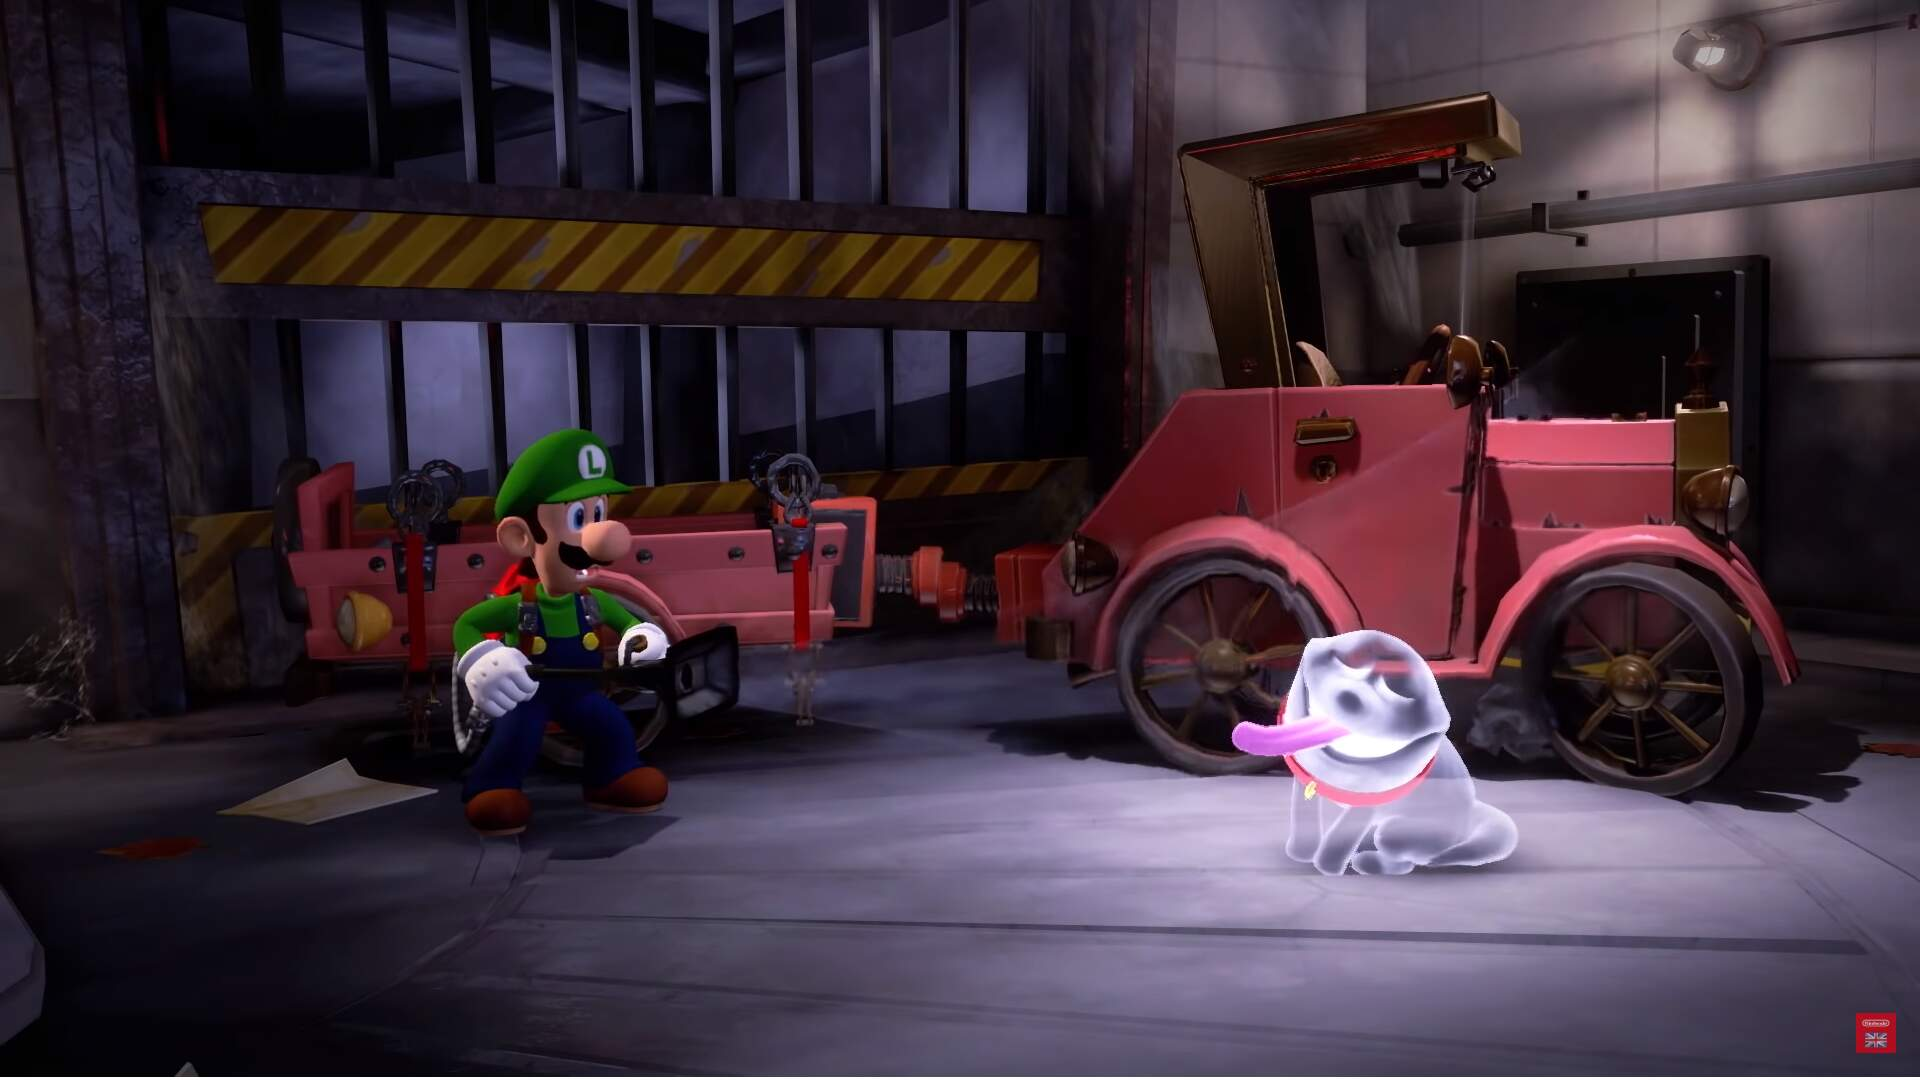 Luigi's Mansion 3 is Nintendo's Take on The Shining